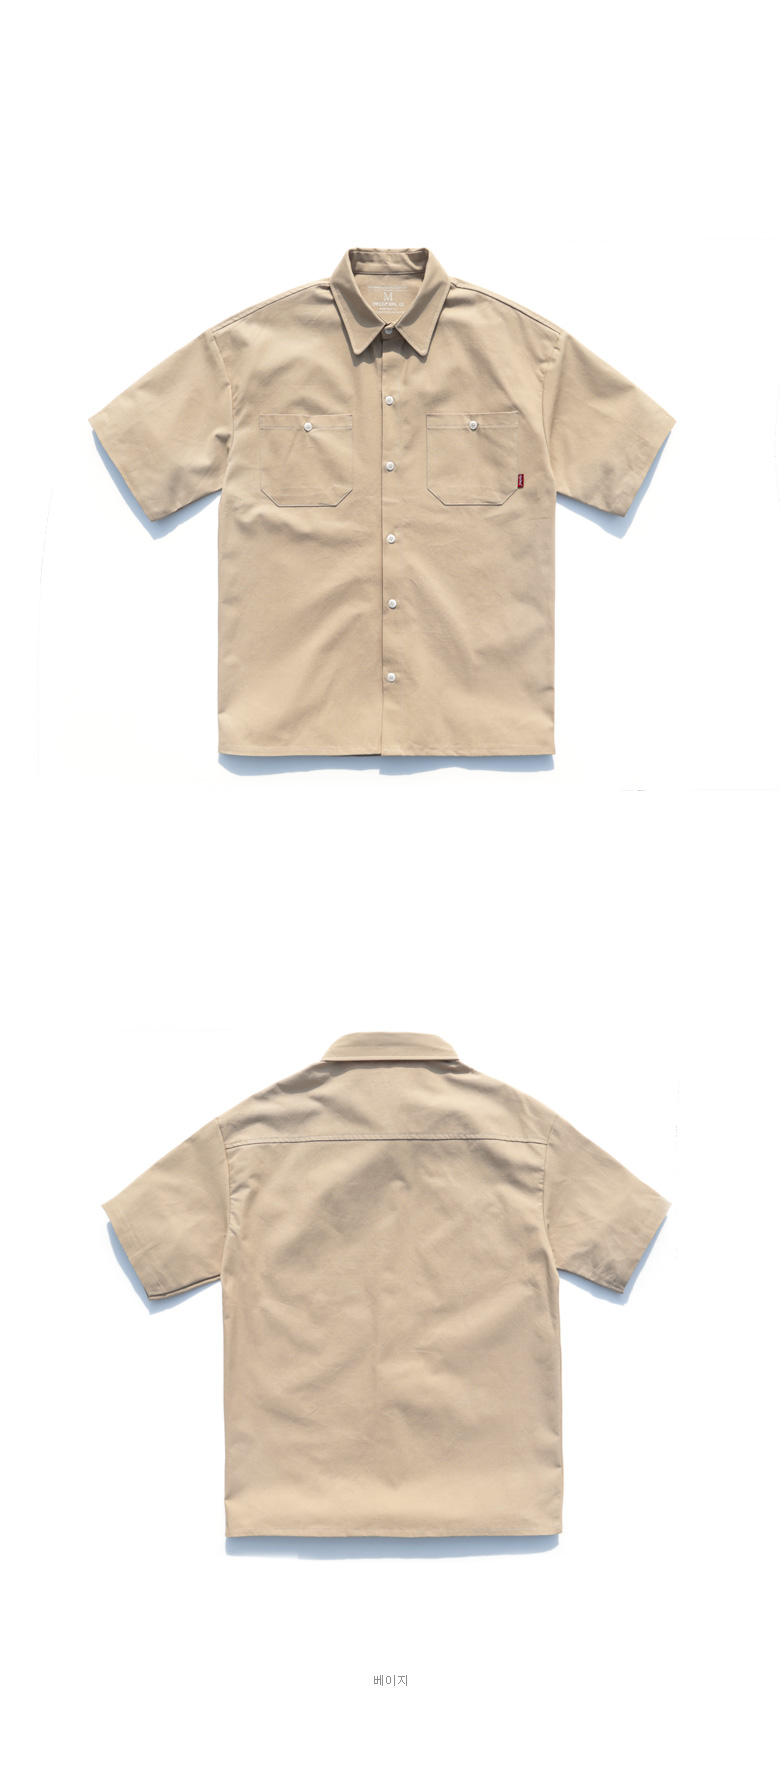 20180412_dy_twopocket_shirt_beige_uk_01.jpg